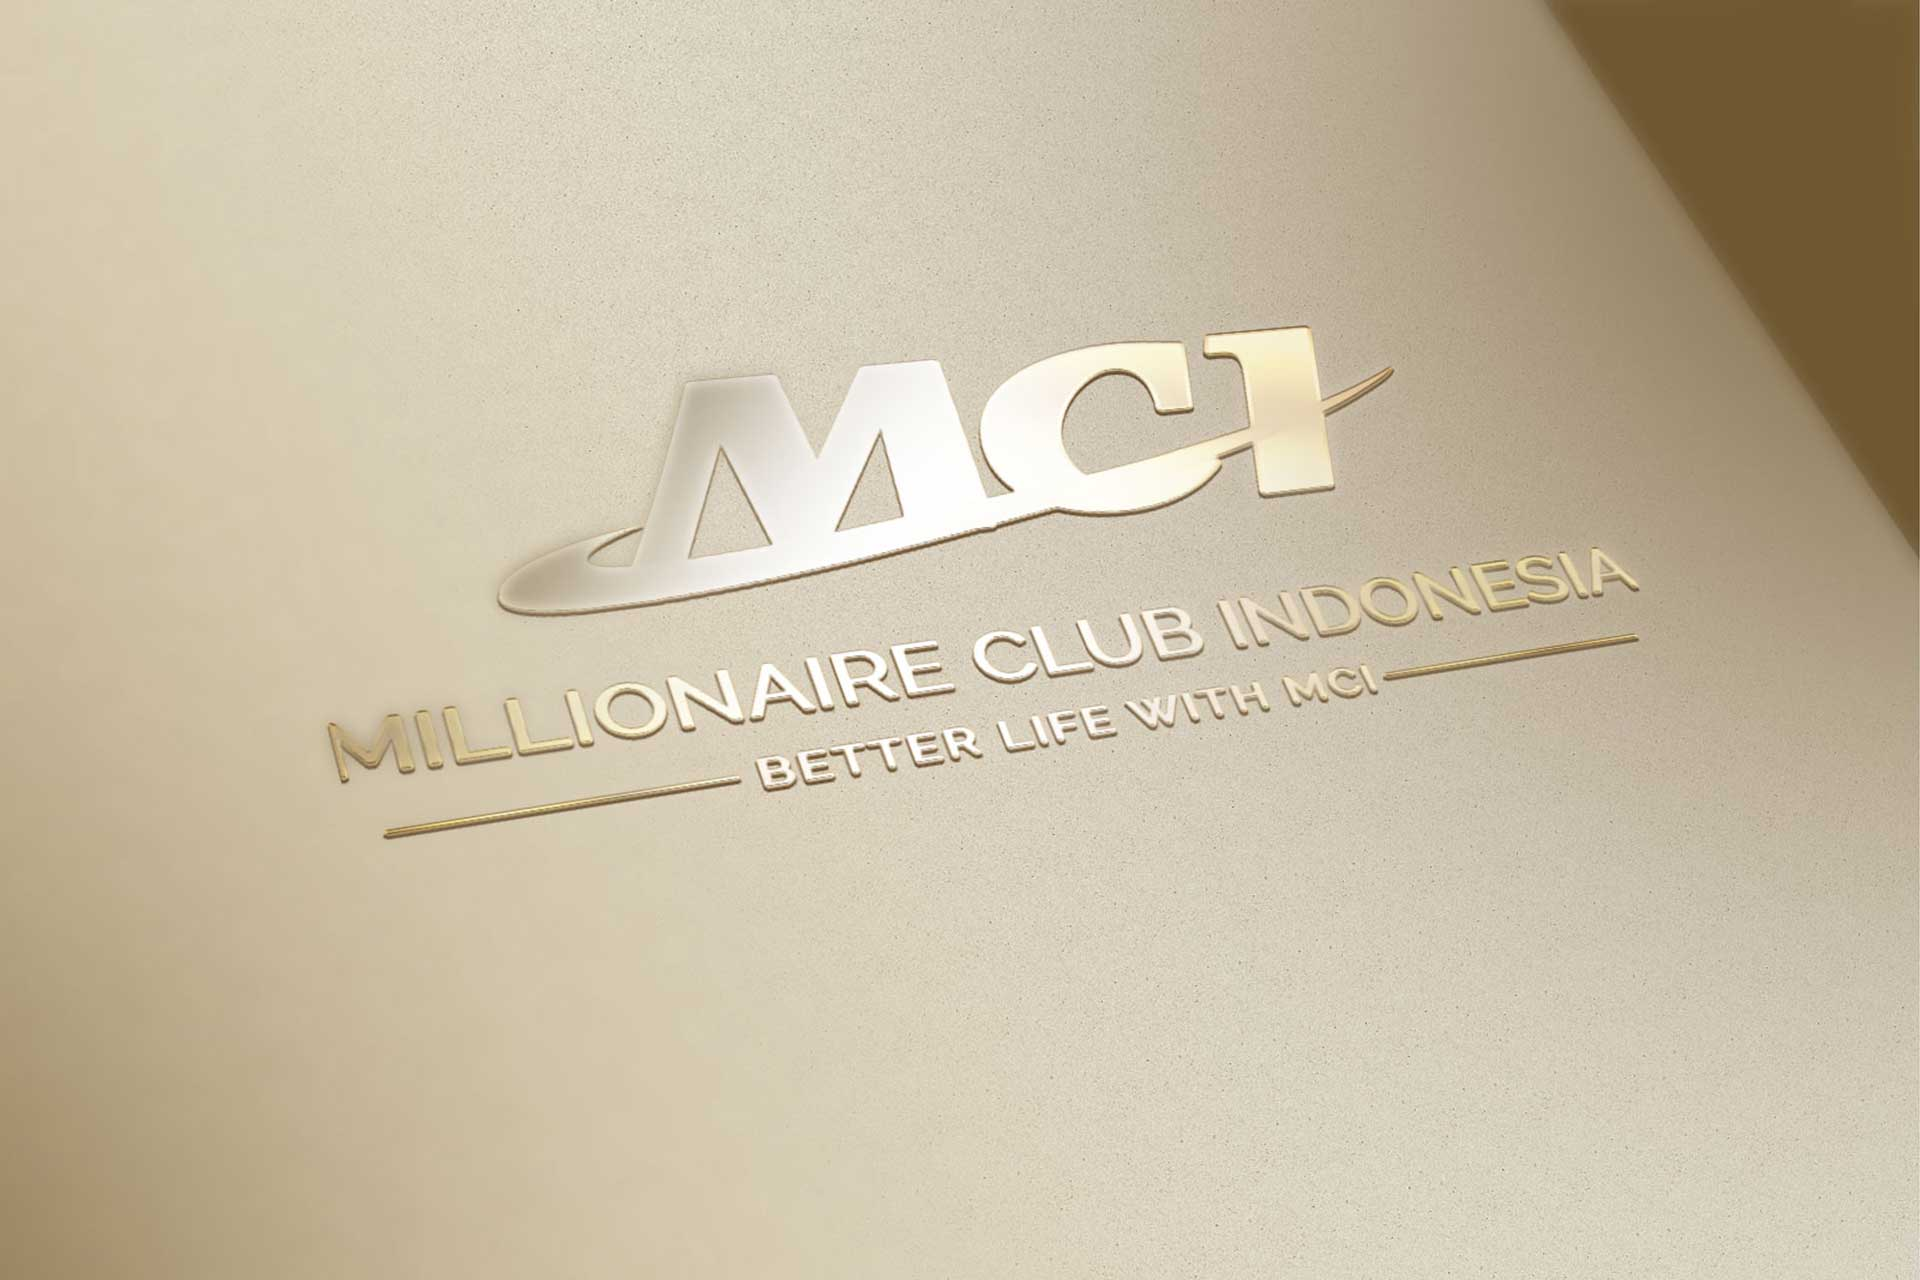 Welcome to Millionaire Club Indonesia